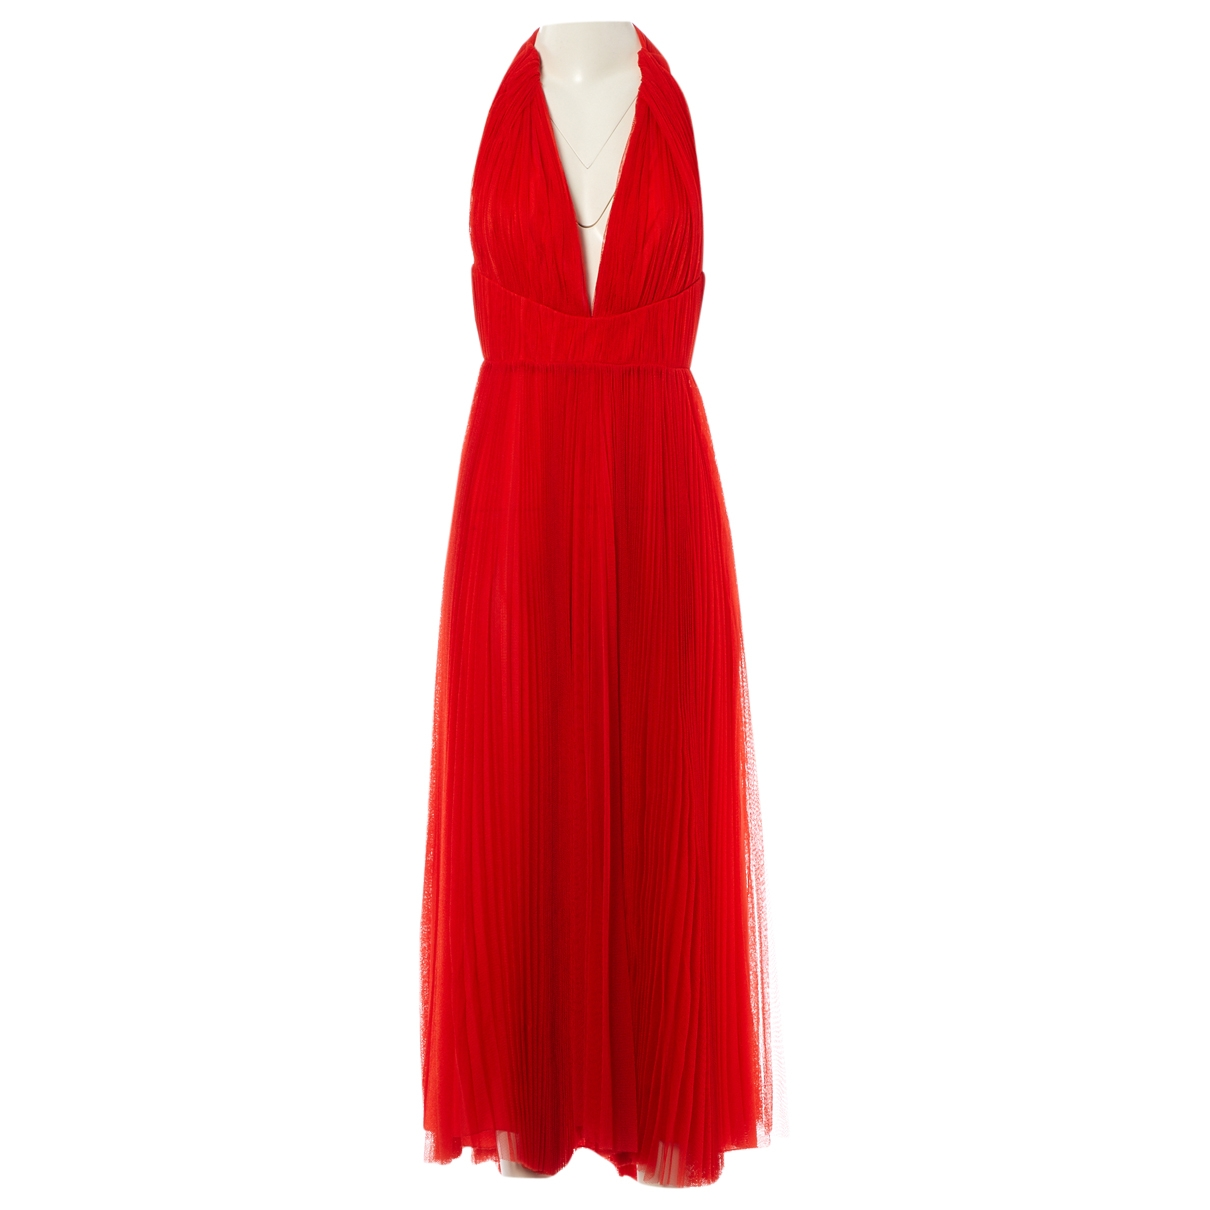 Maria Lucia Hohan \N Kleid in  Rot Polyester